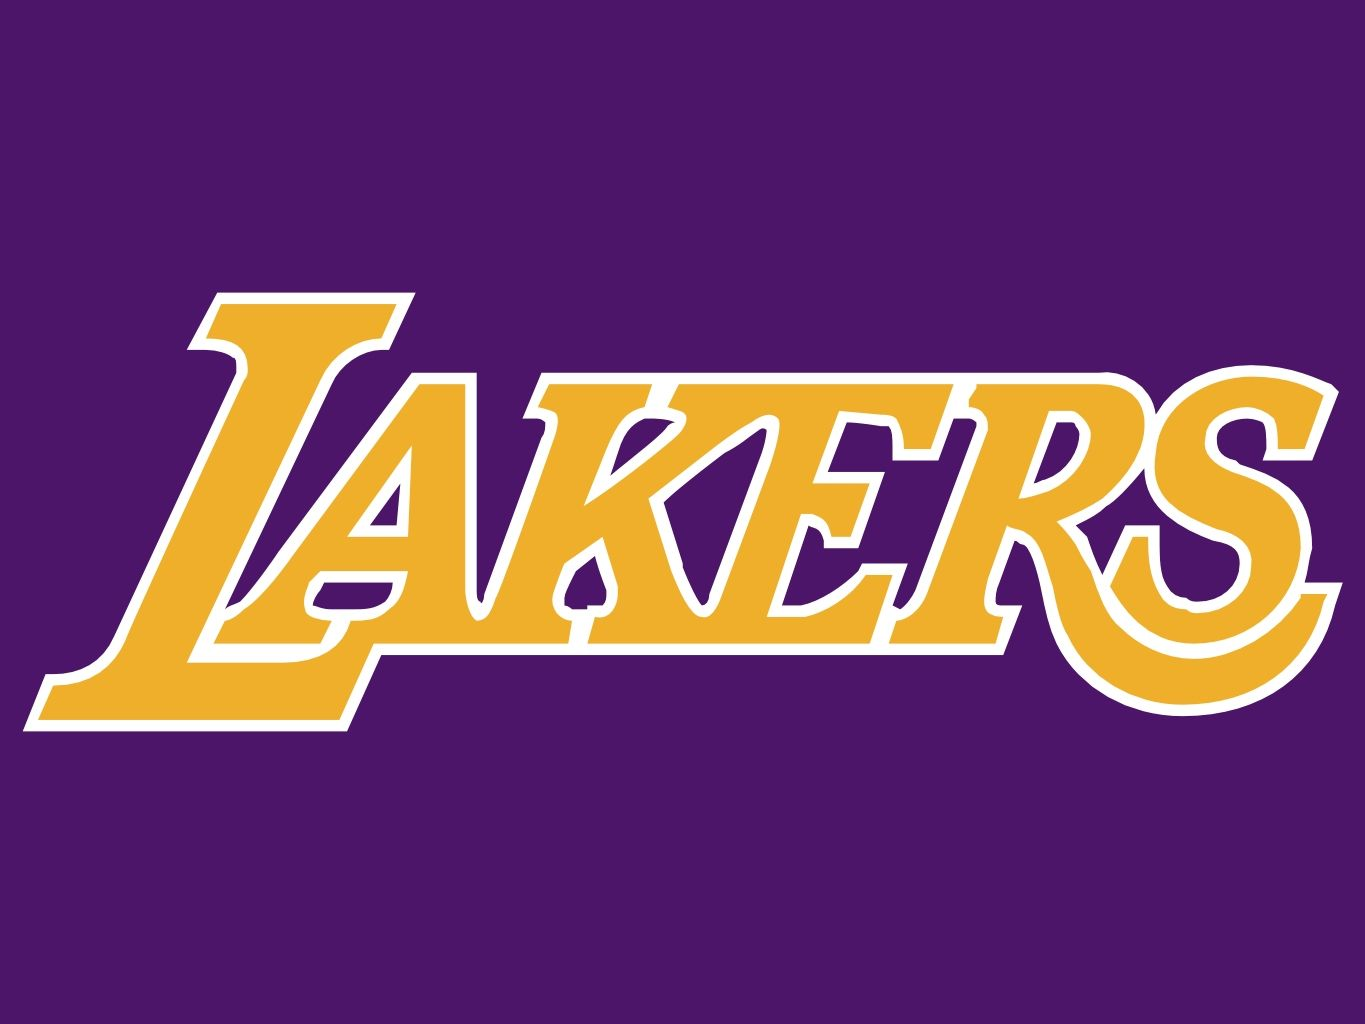 The lakers logo is an excellent example of using purple and yellow the lakers logo is an excellent example of using purple and yellow to compliment each other voltagebd Image collections